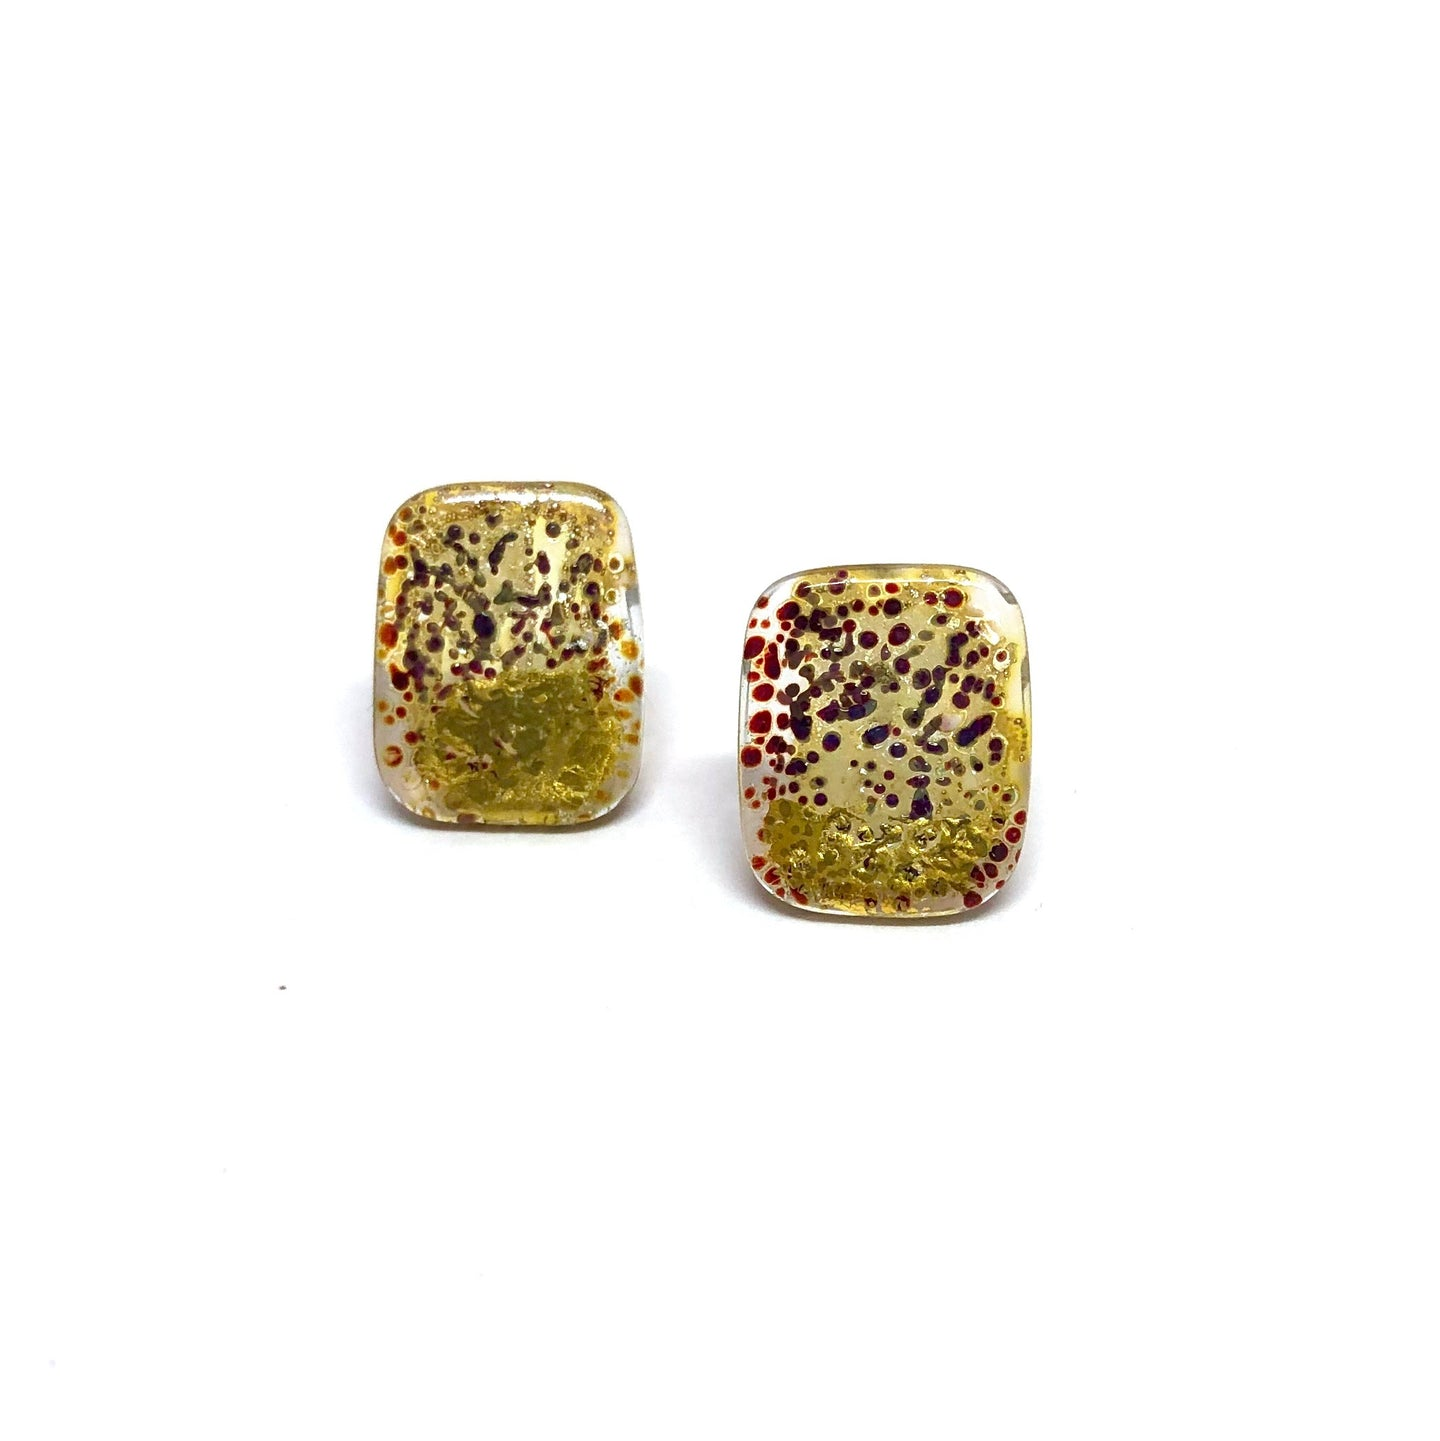 Hakone Handmade Glass Panel Stud Earrings